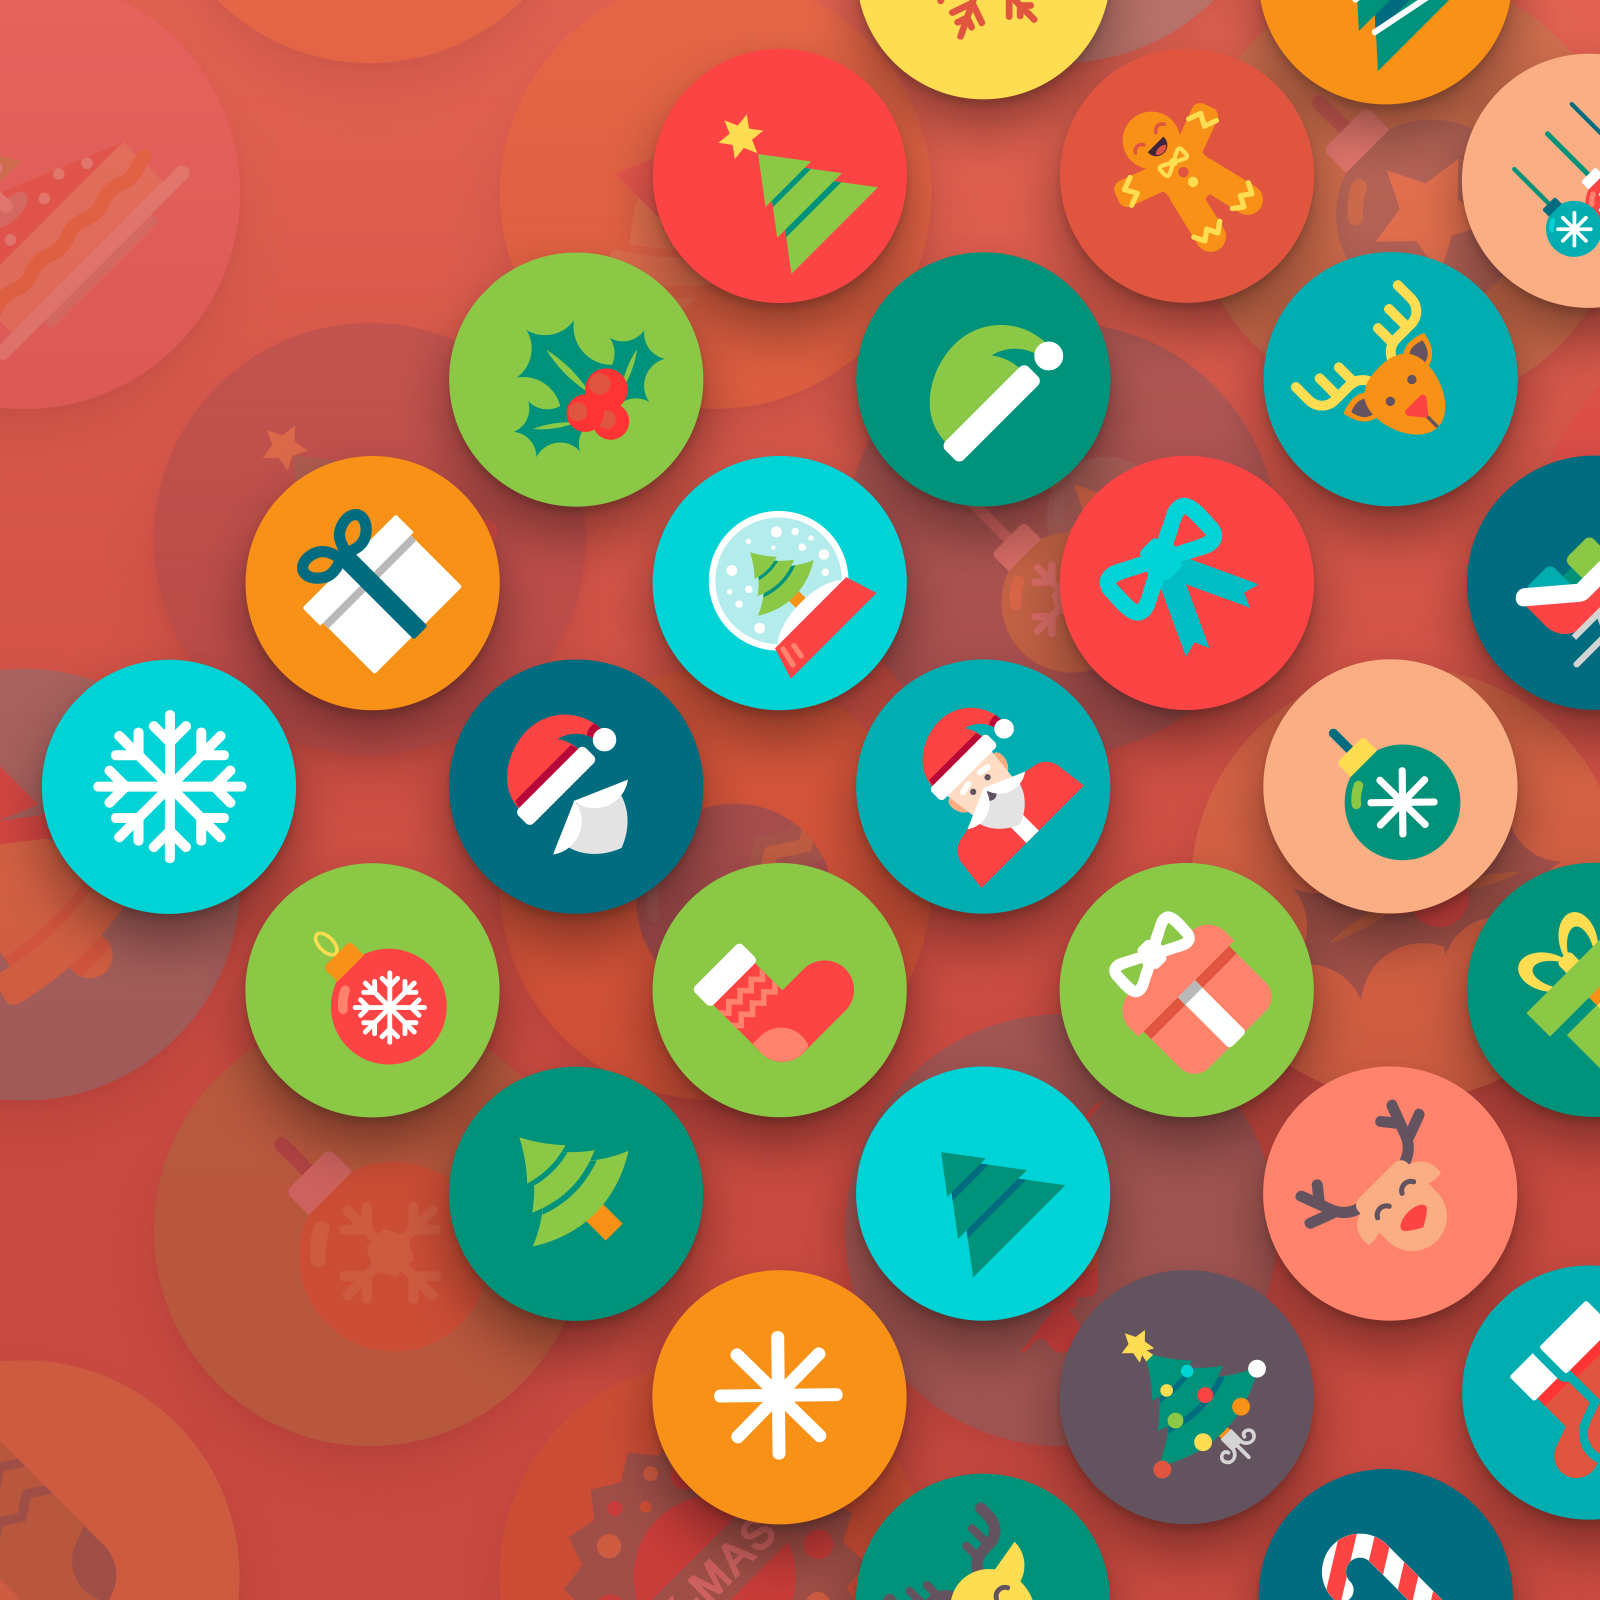 free-christmas-icons2dsd